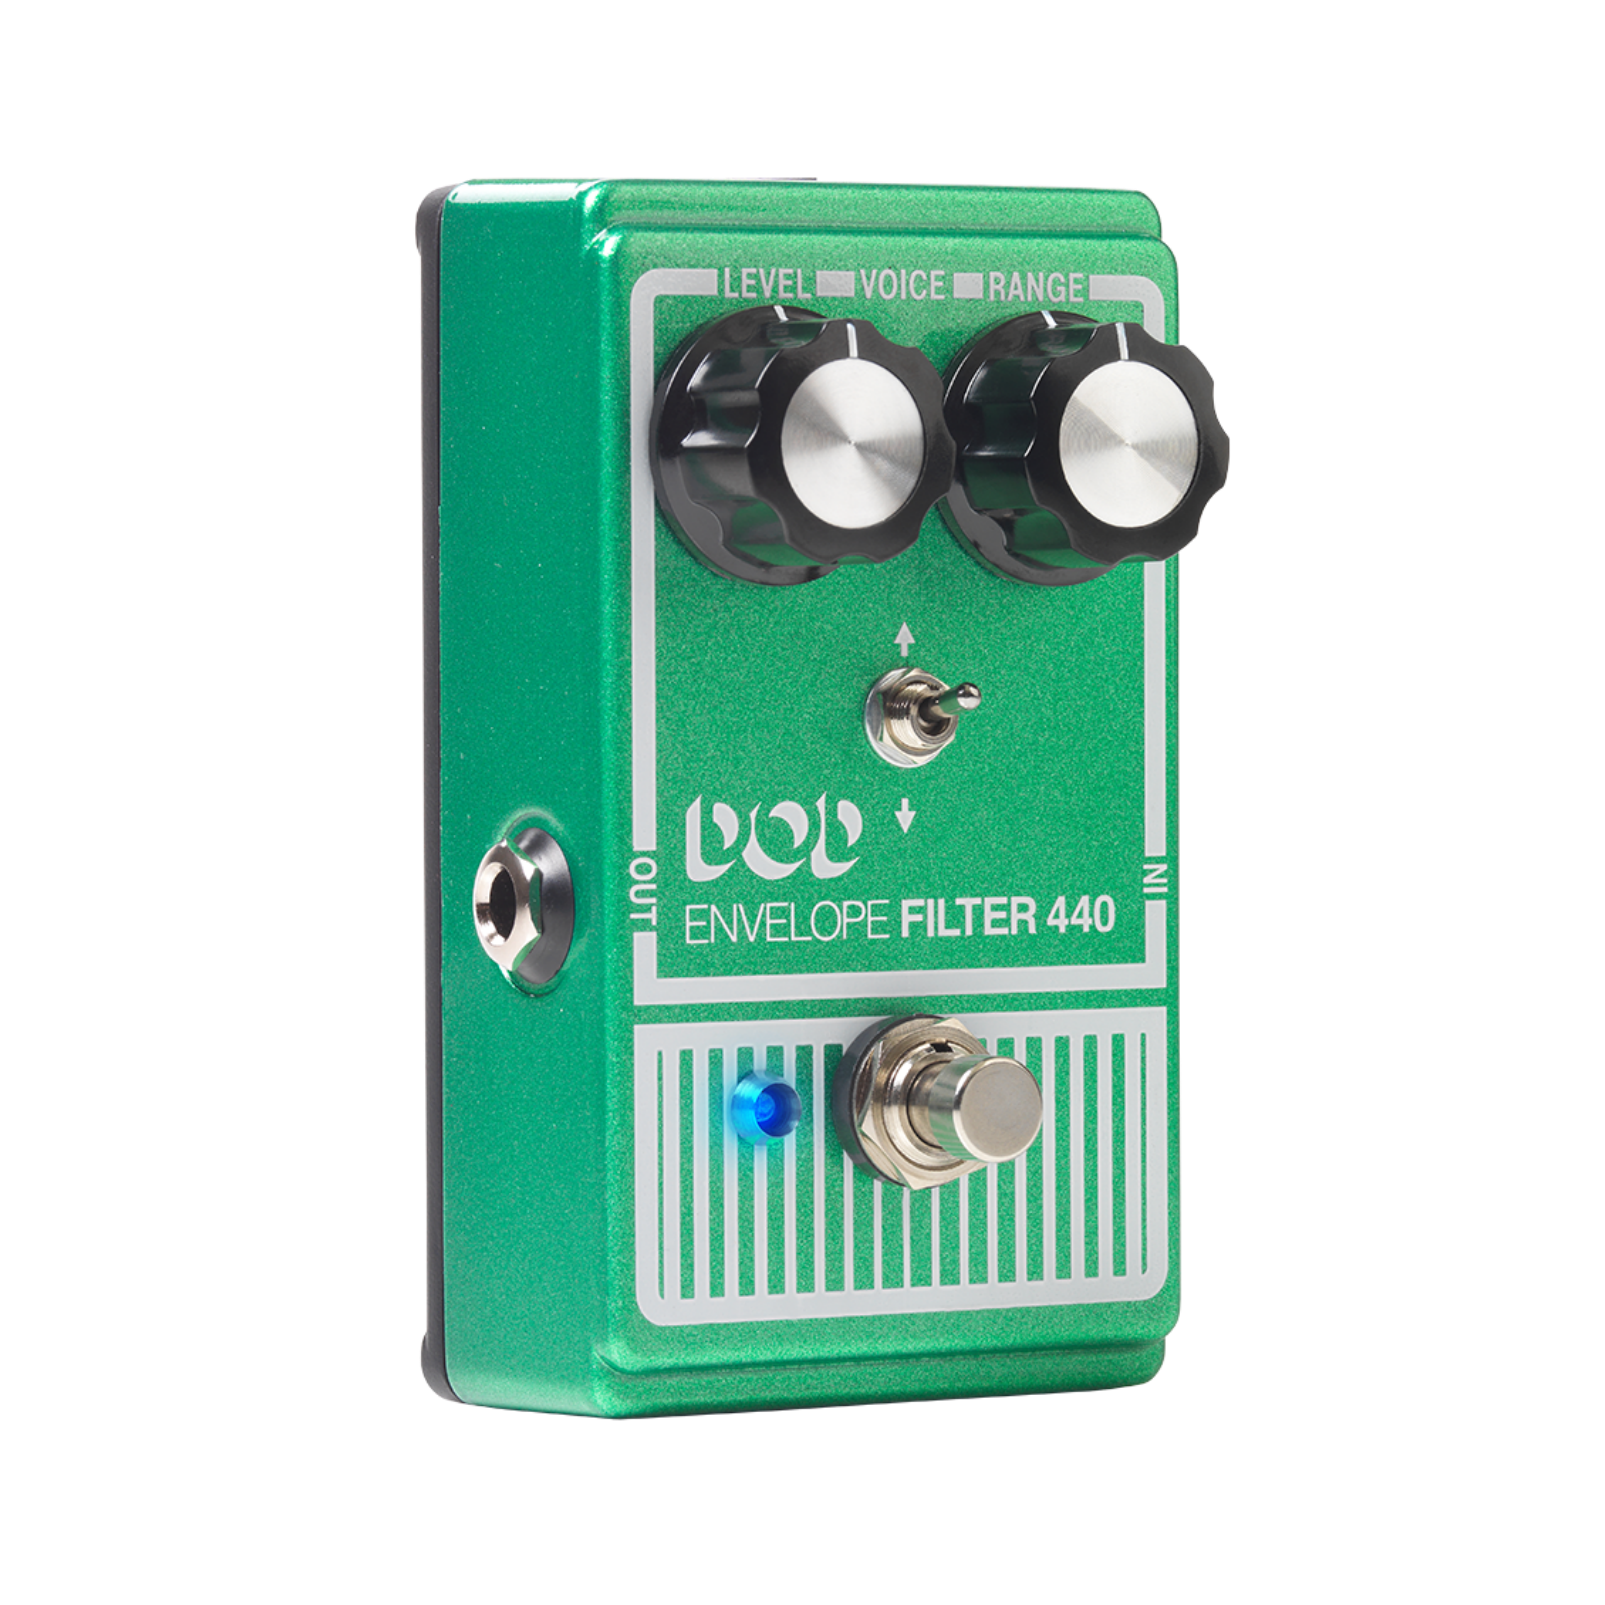 Envelope Filter 440 - Green - Envelope Filter - Hero